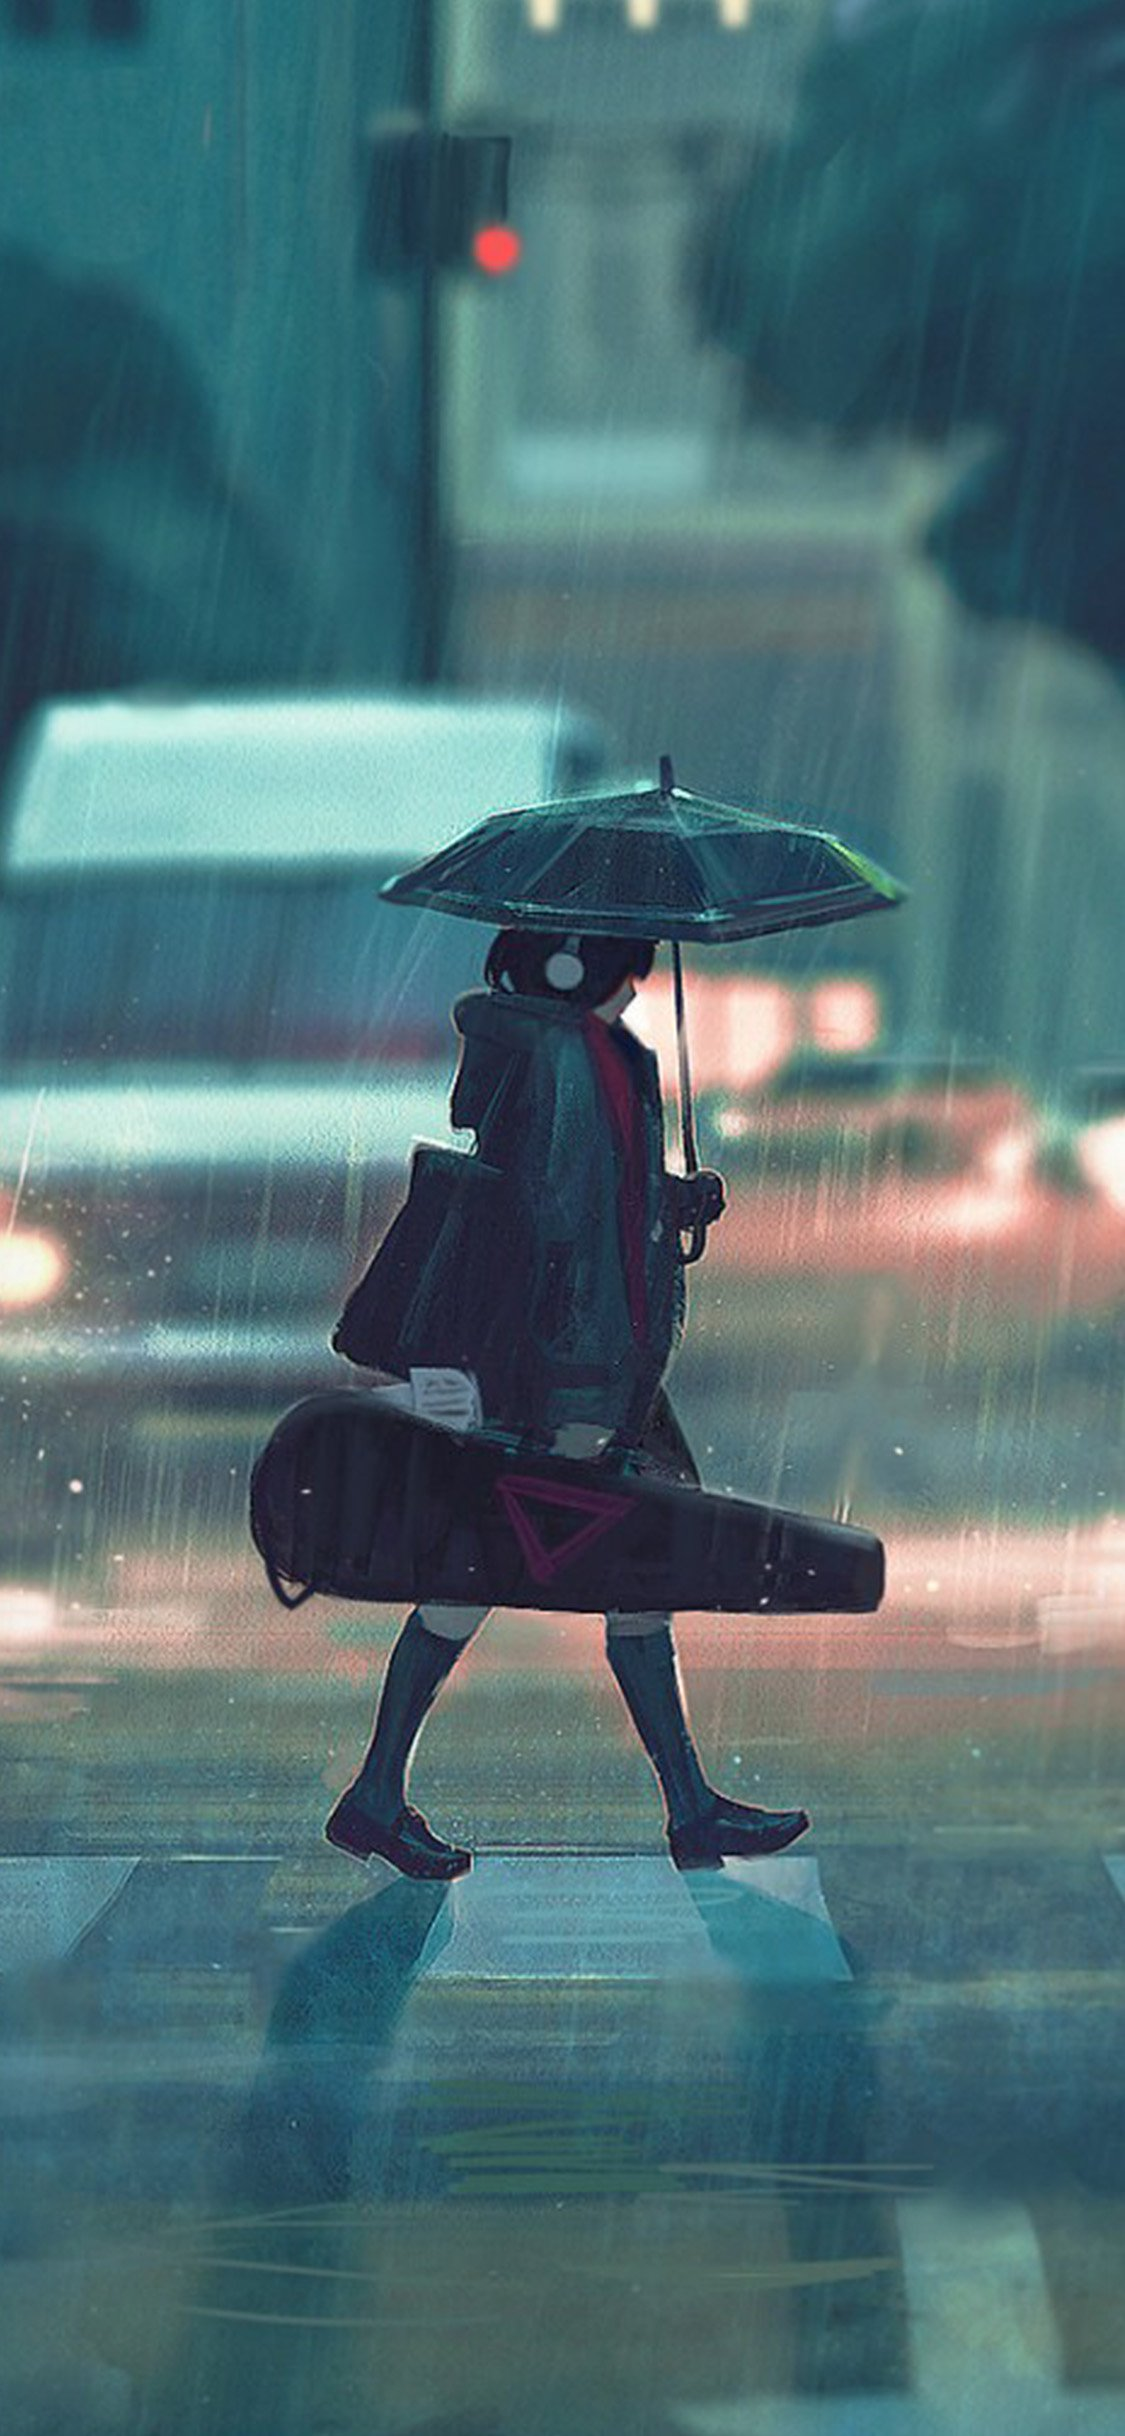 Rainy Day Anime Paint Girl Iphone X Wallpapers Free Download